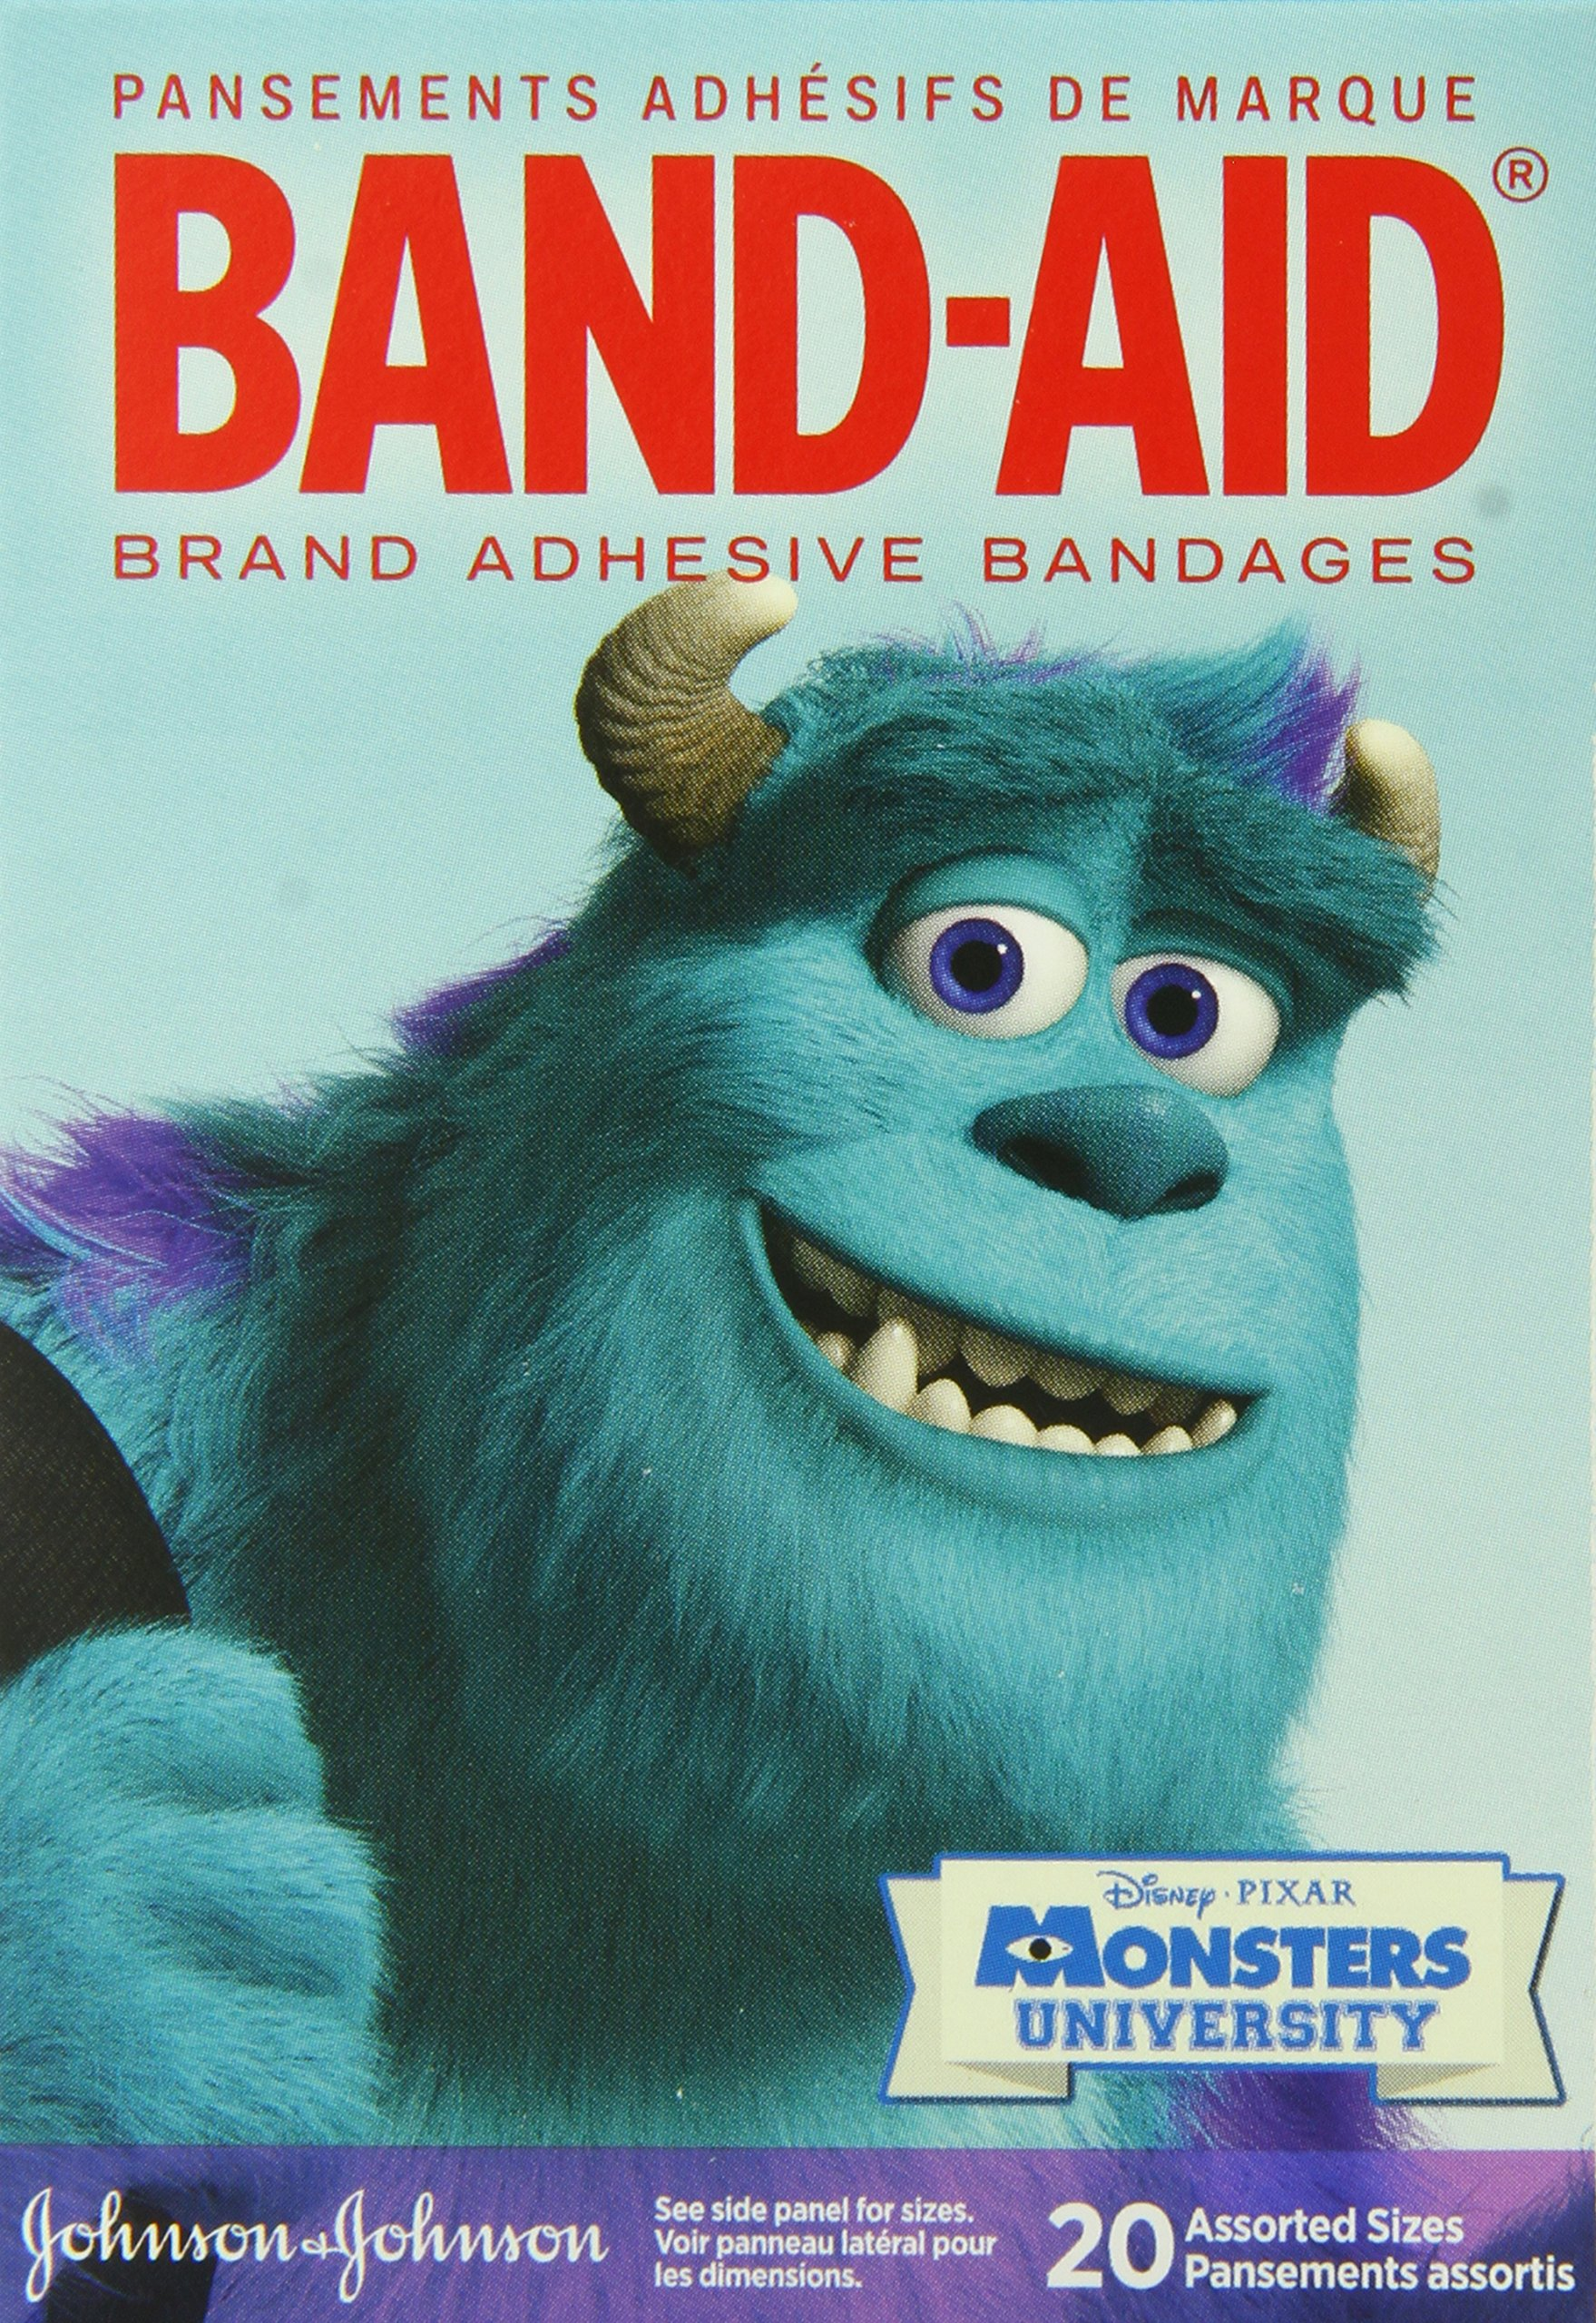 Band-Aid Adhesive Assorted Bandages, Disney-Pixar Monsters University, 20 Count (Pack of 6) by Band-Aid